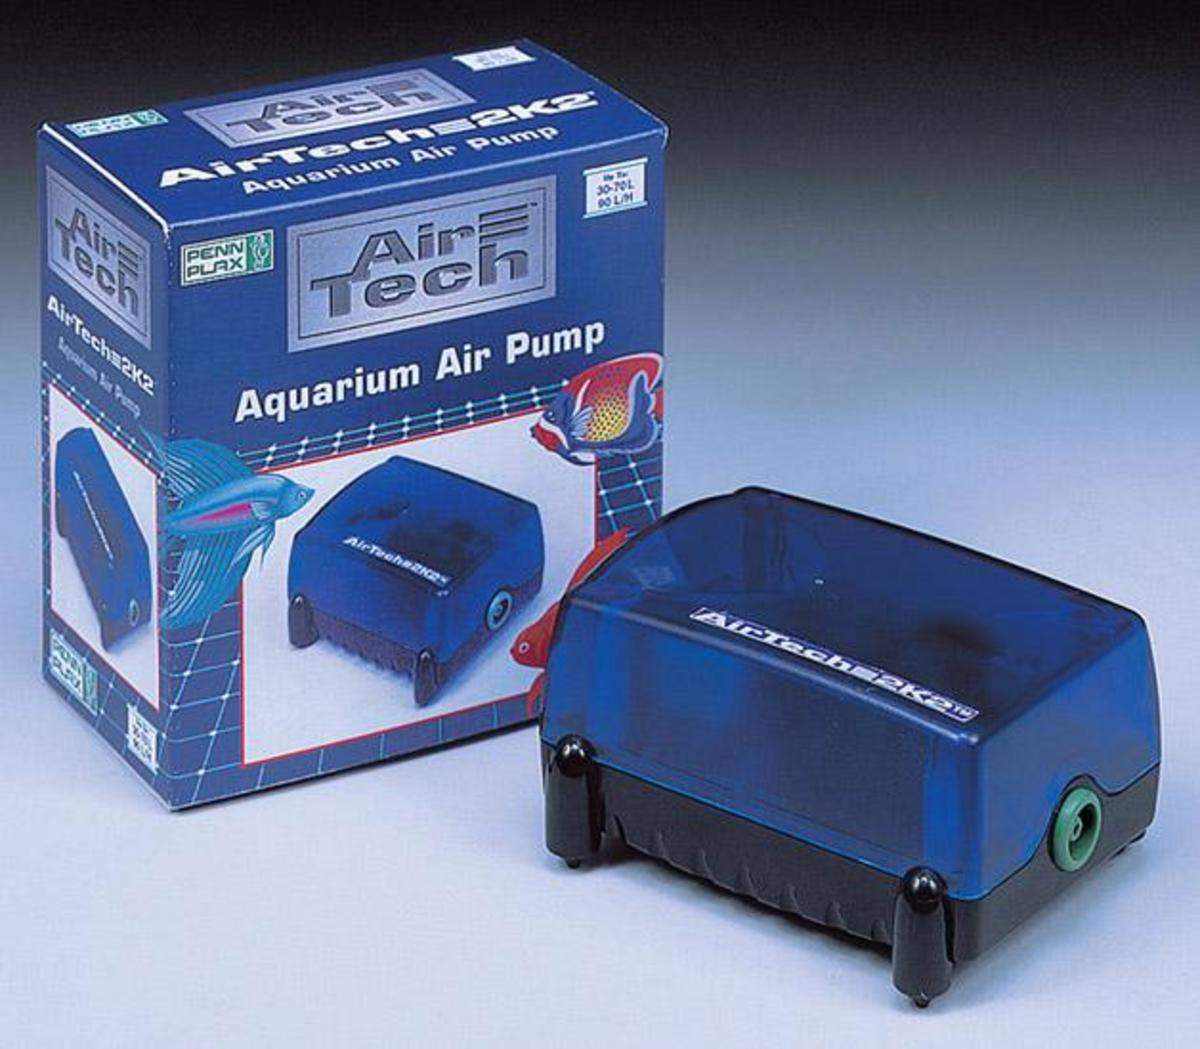 You can defeat laser-to-window audio bugs with a small air pump.